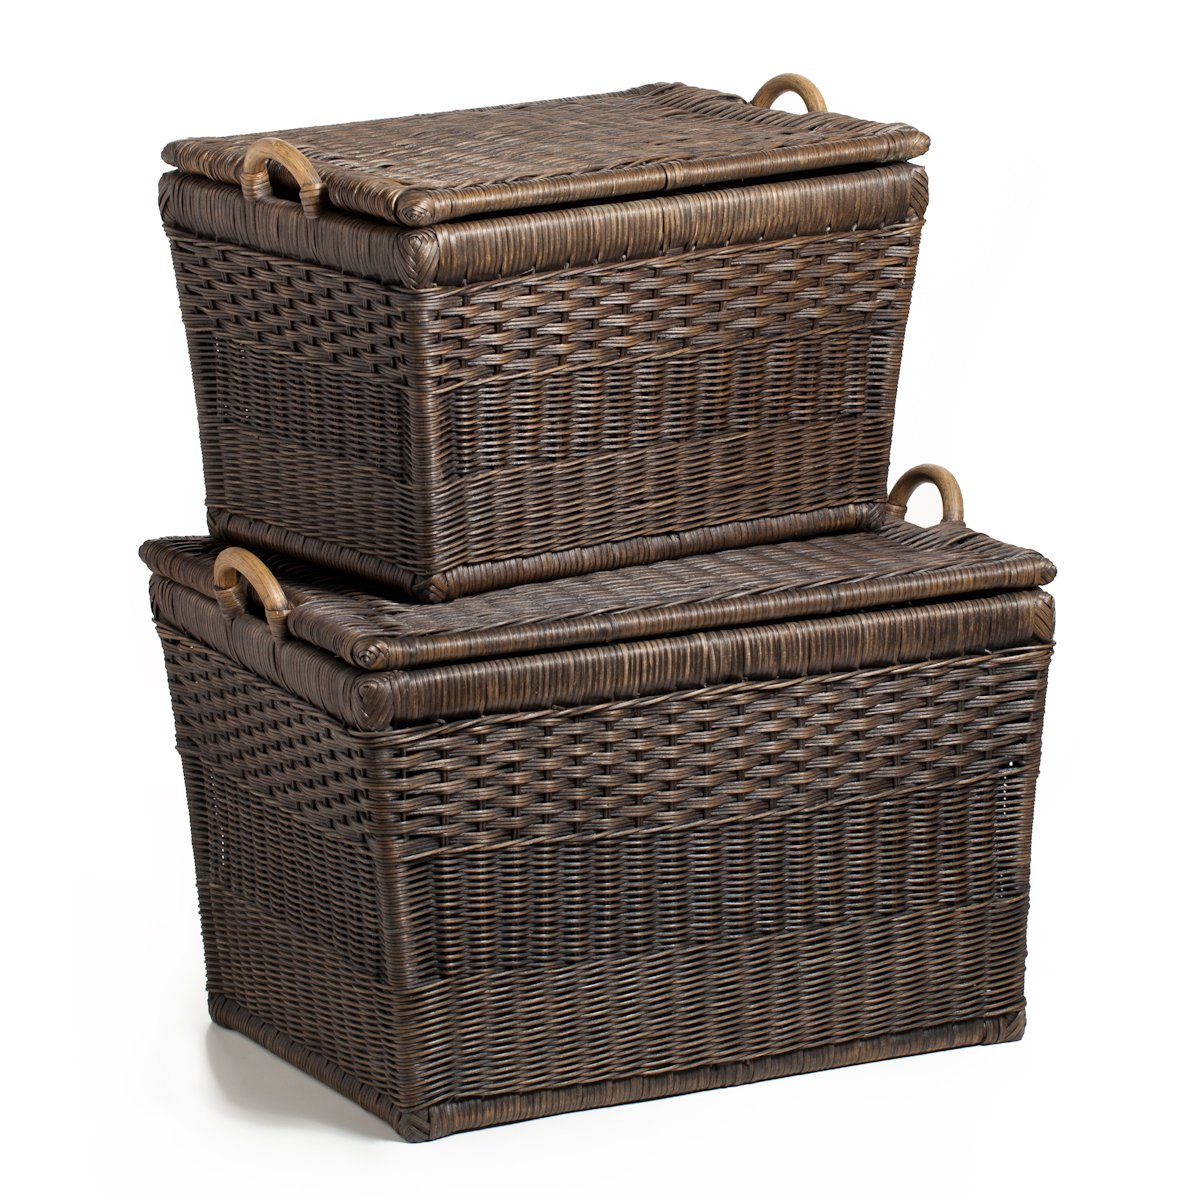 Amazon.com: The Basket Lady Lift-off Lid Wicker Storage Basket, Large,  Antique Walnut Brown: Home u0026 Kitchen